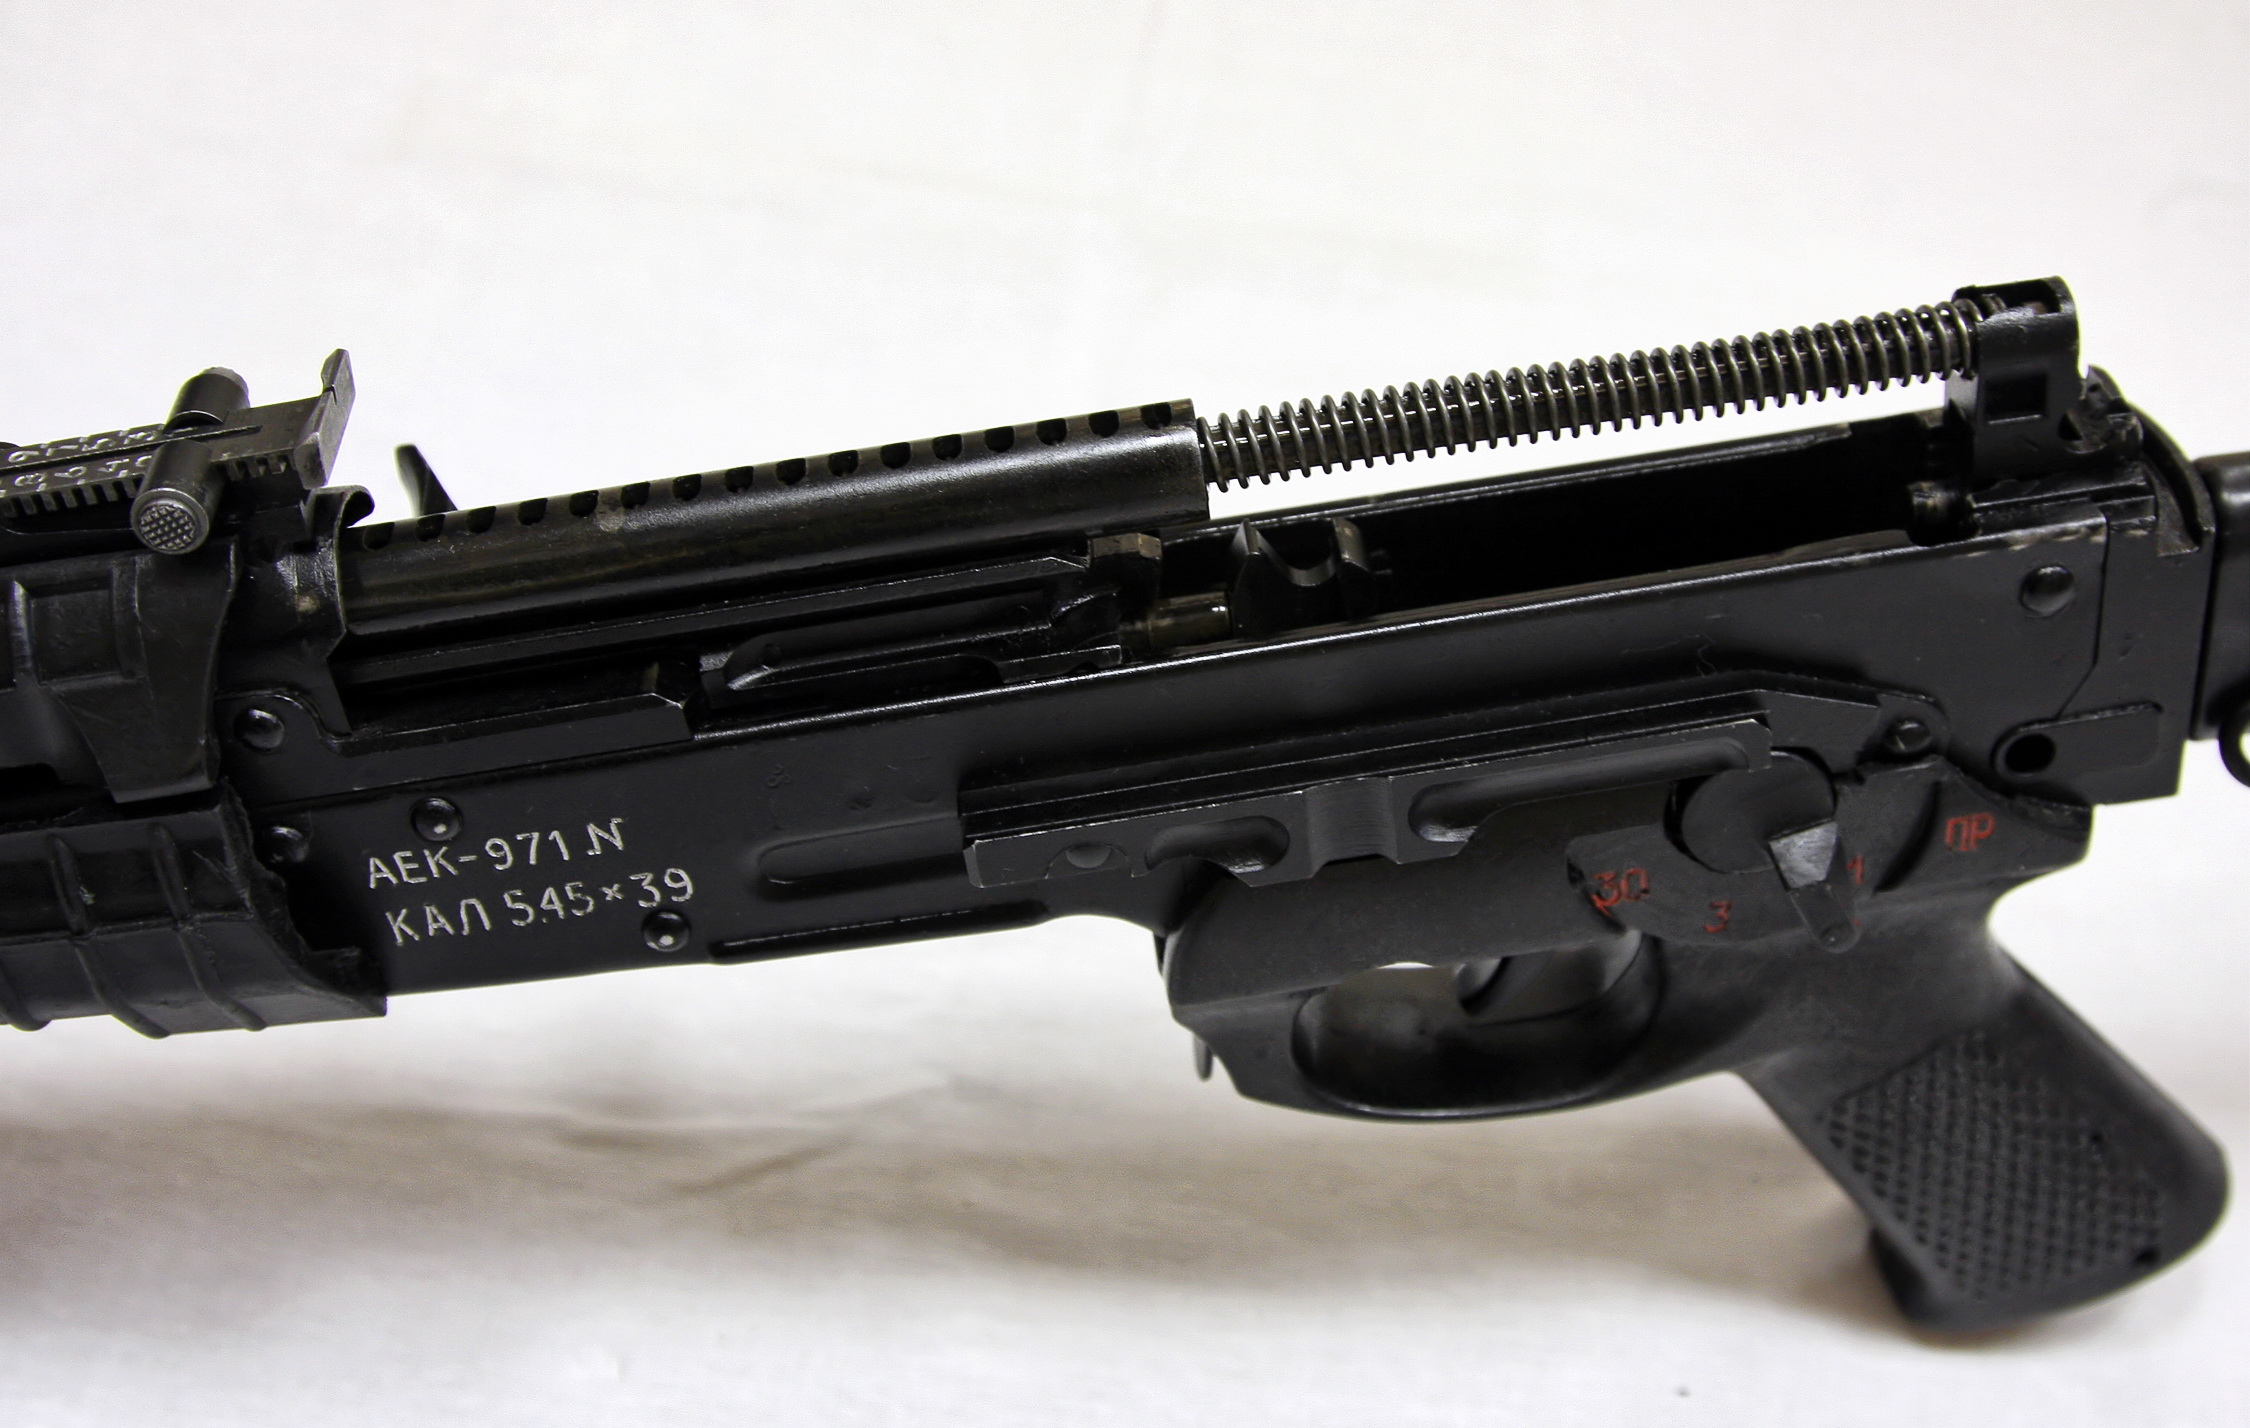 File:AEK-971 53 copy.jpg